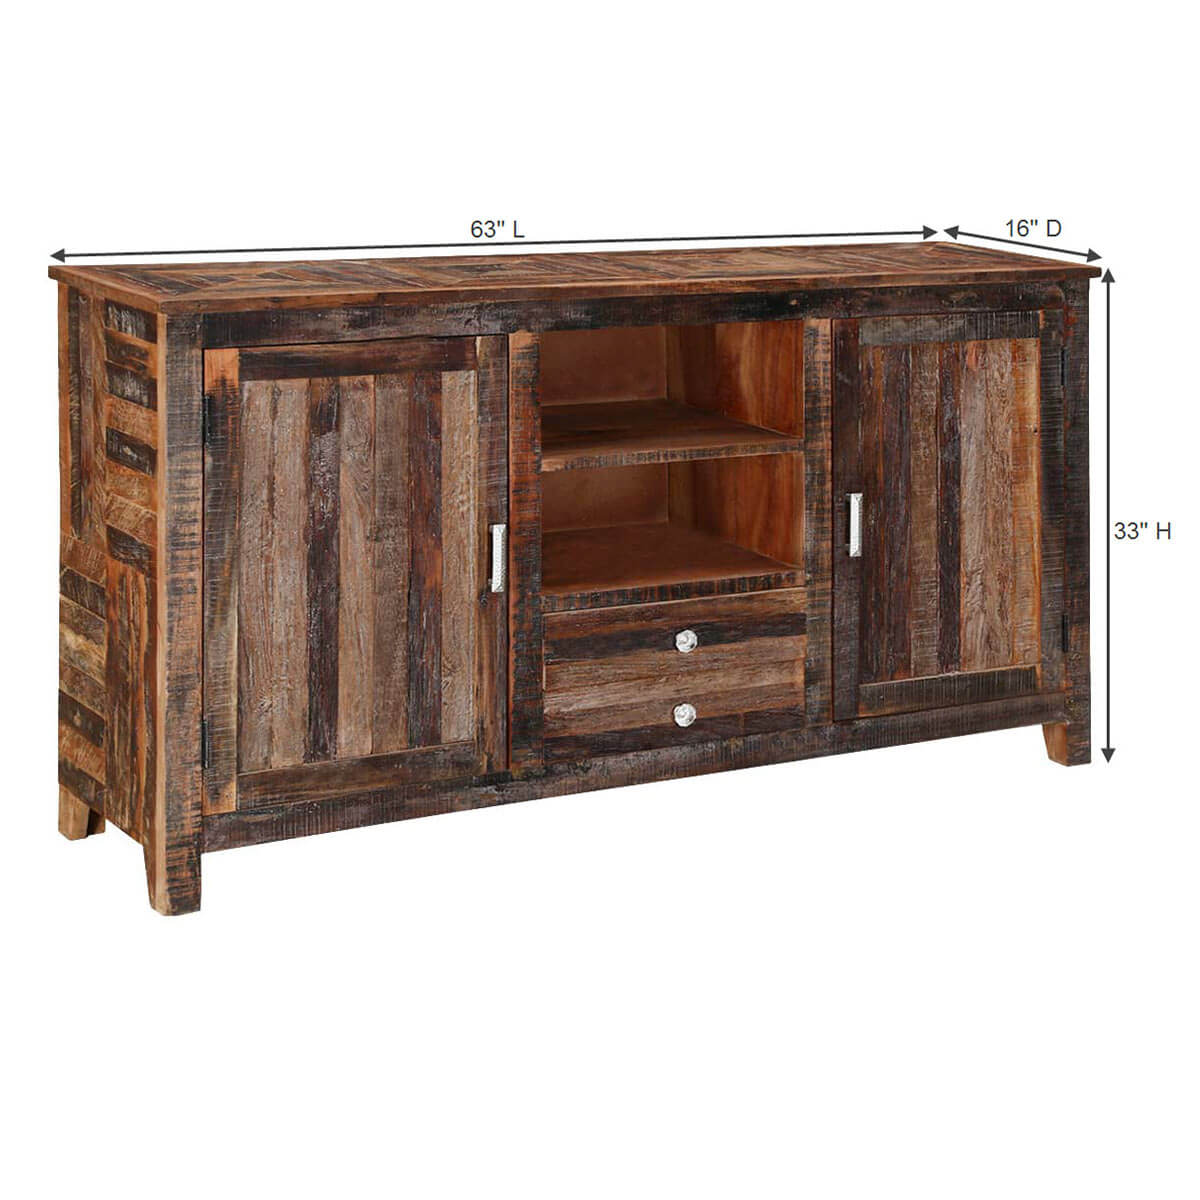 Oregon robust 63 reclaimed wood 2 drawer storage cabinet for Reclaimed wood oregon